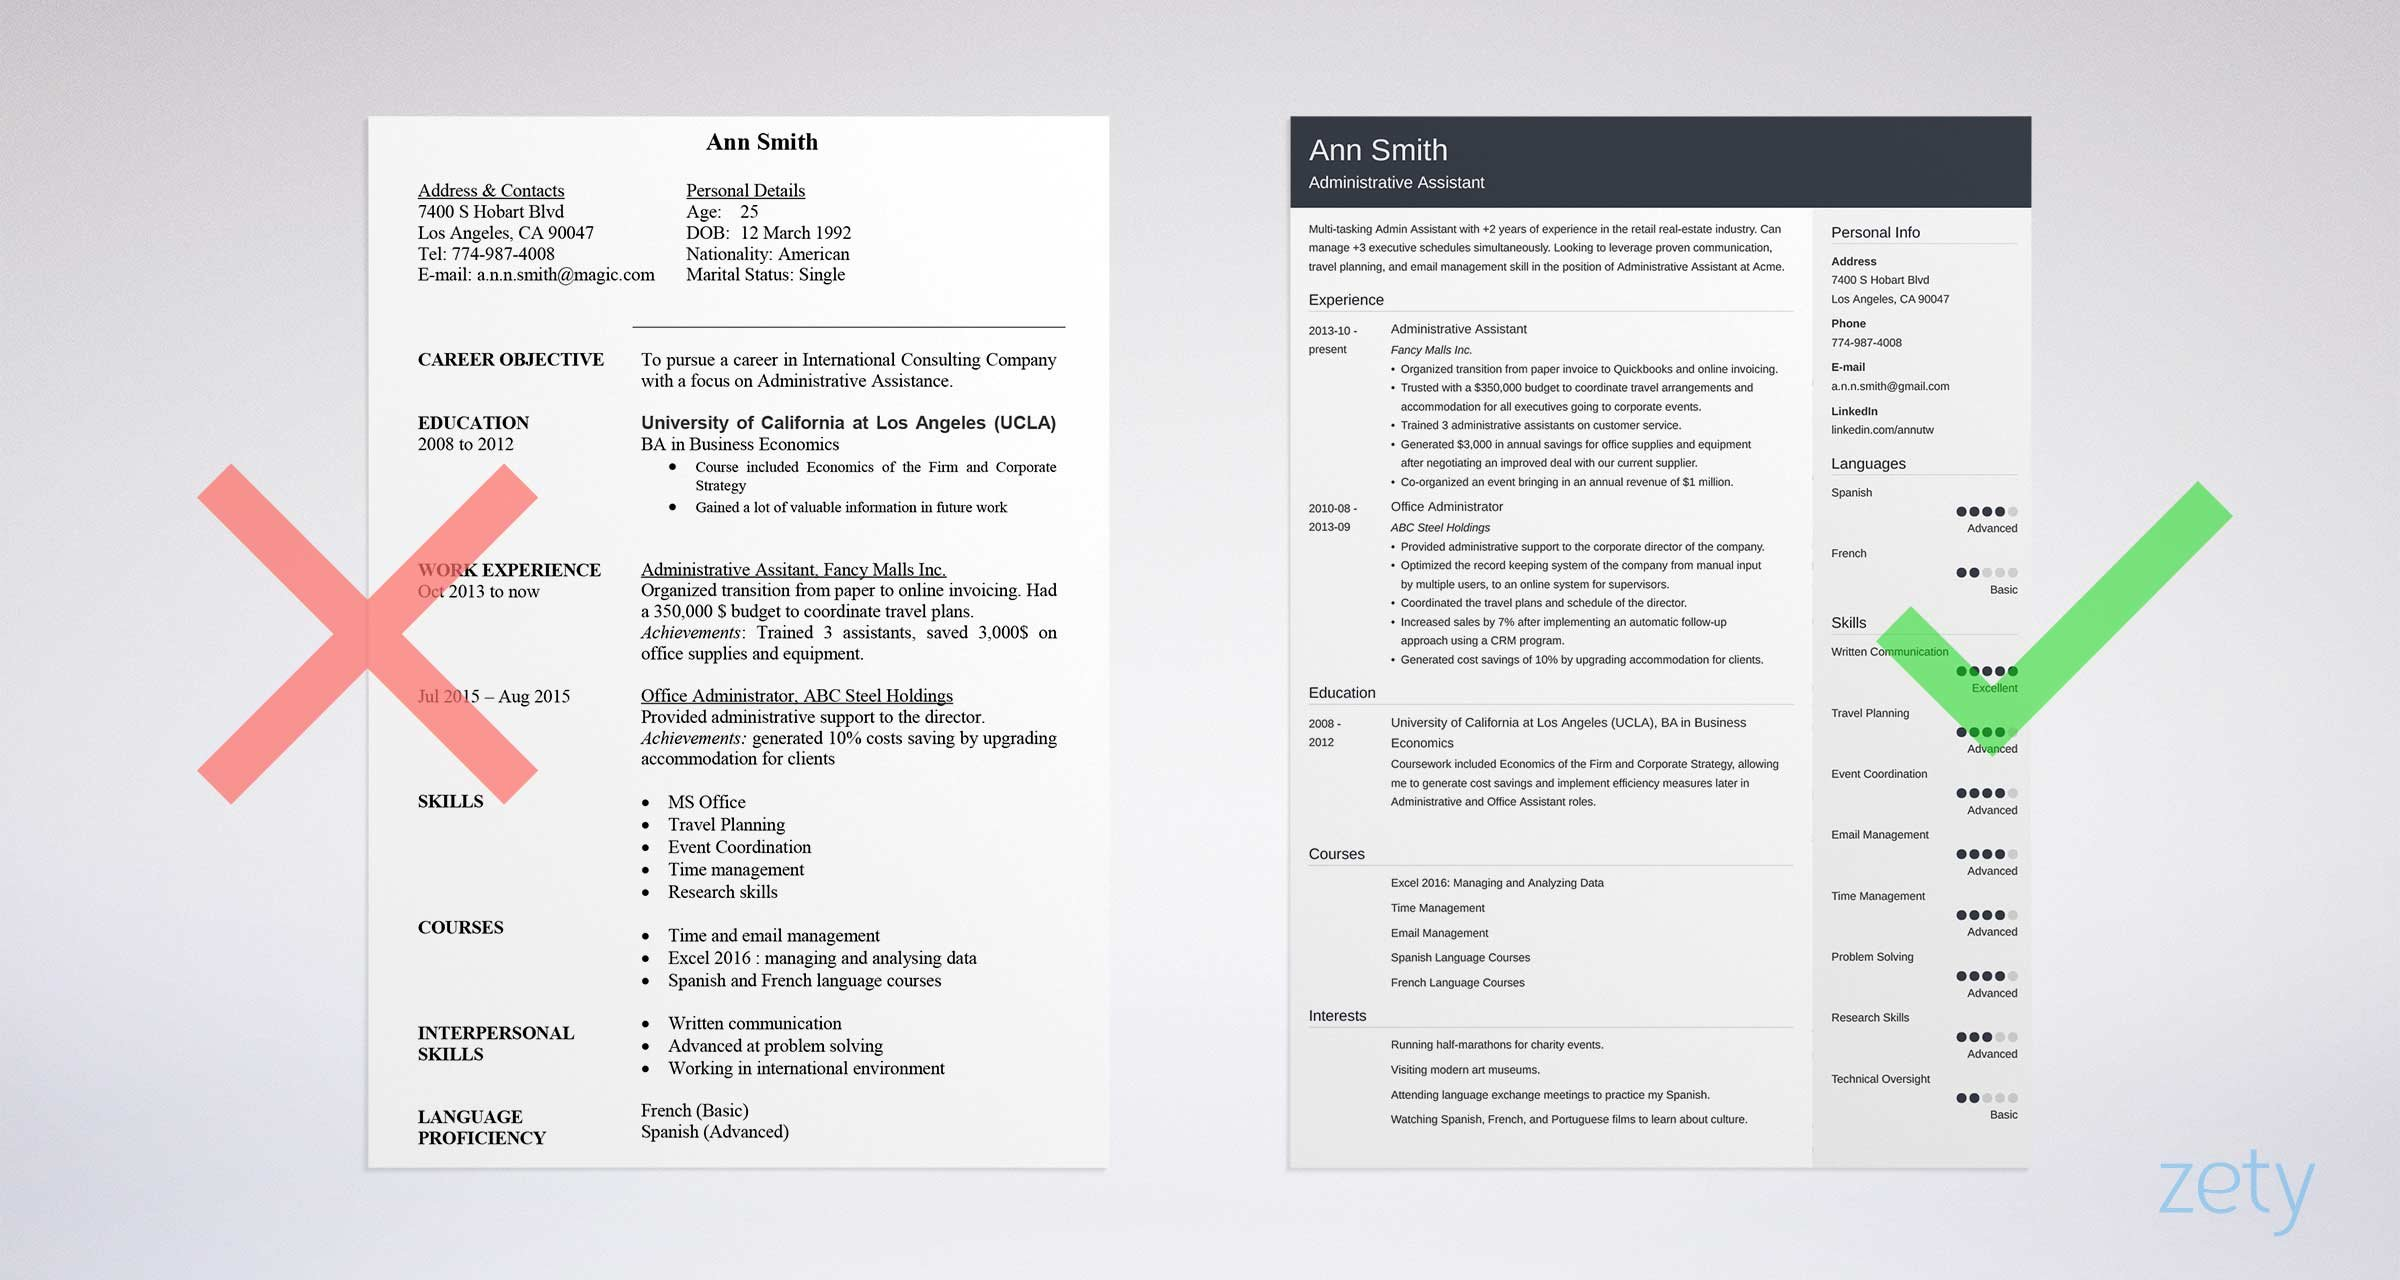 Administrative Assistant Cover Letter: Sample & Guide [20+ Examples]